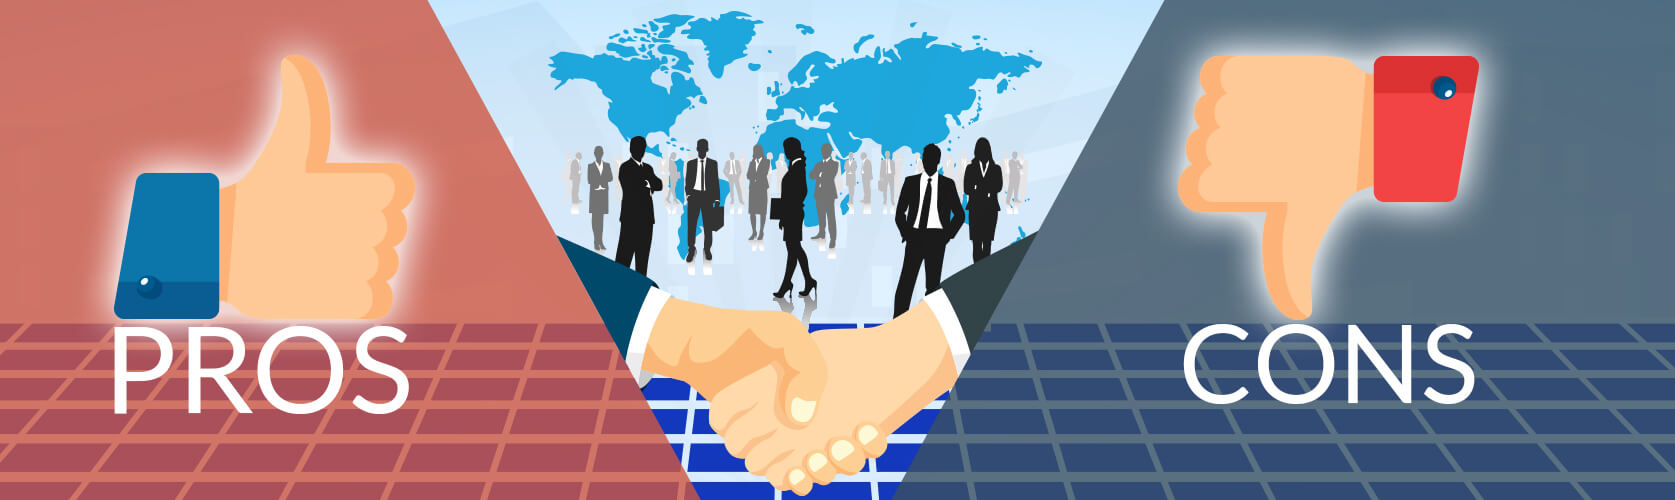 handshake with business man and woman as background